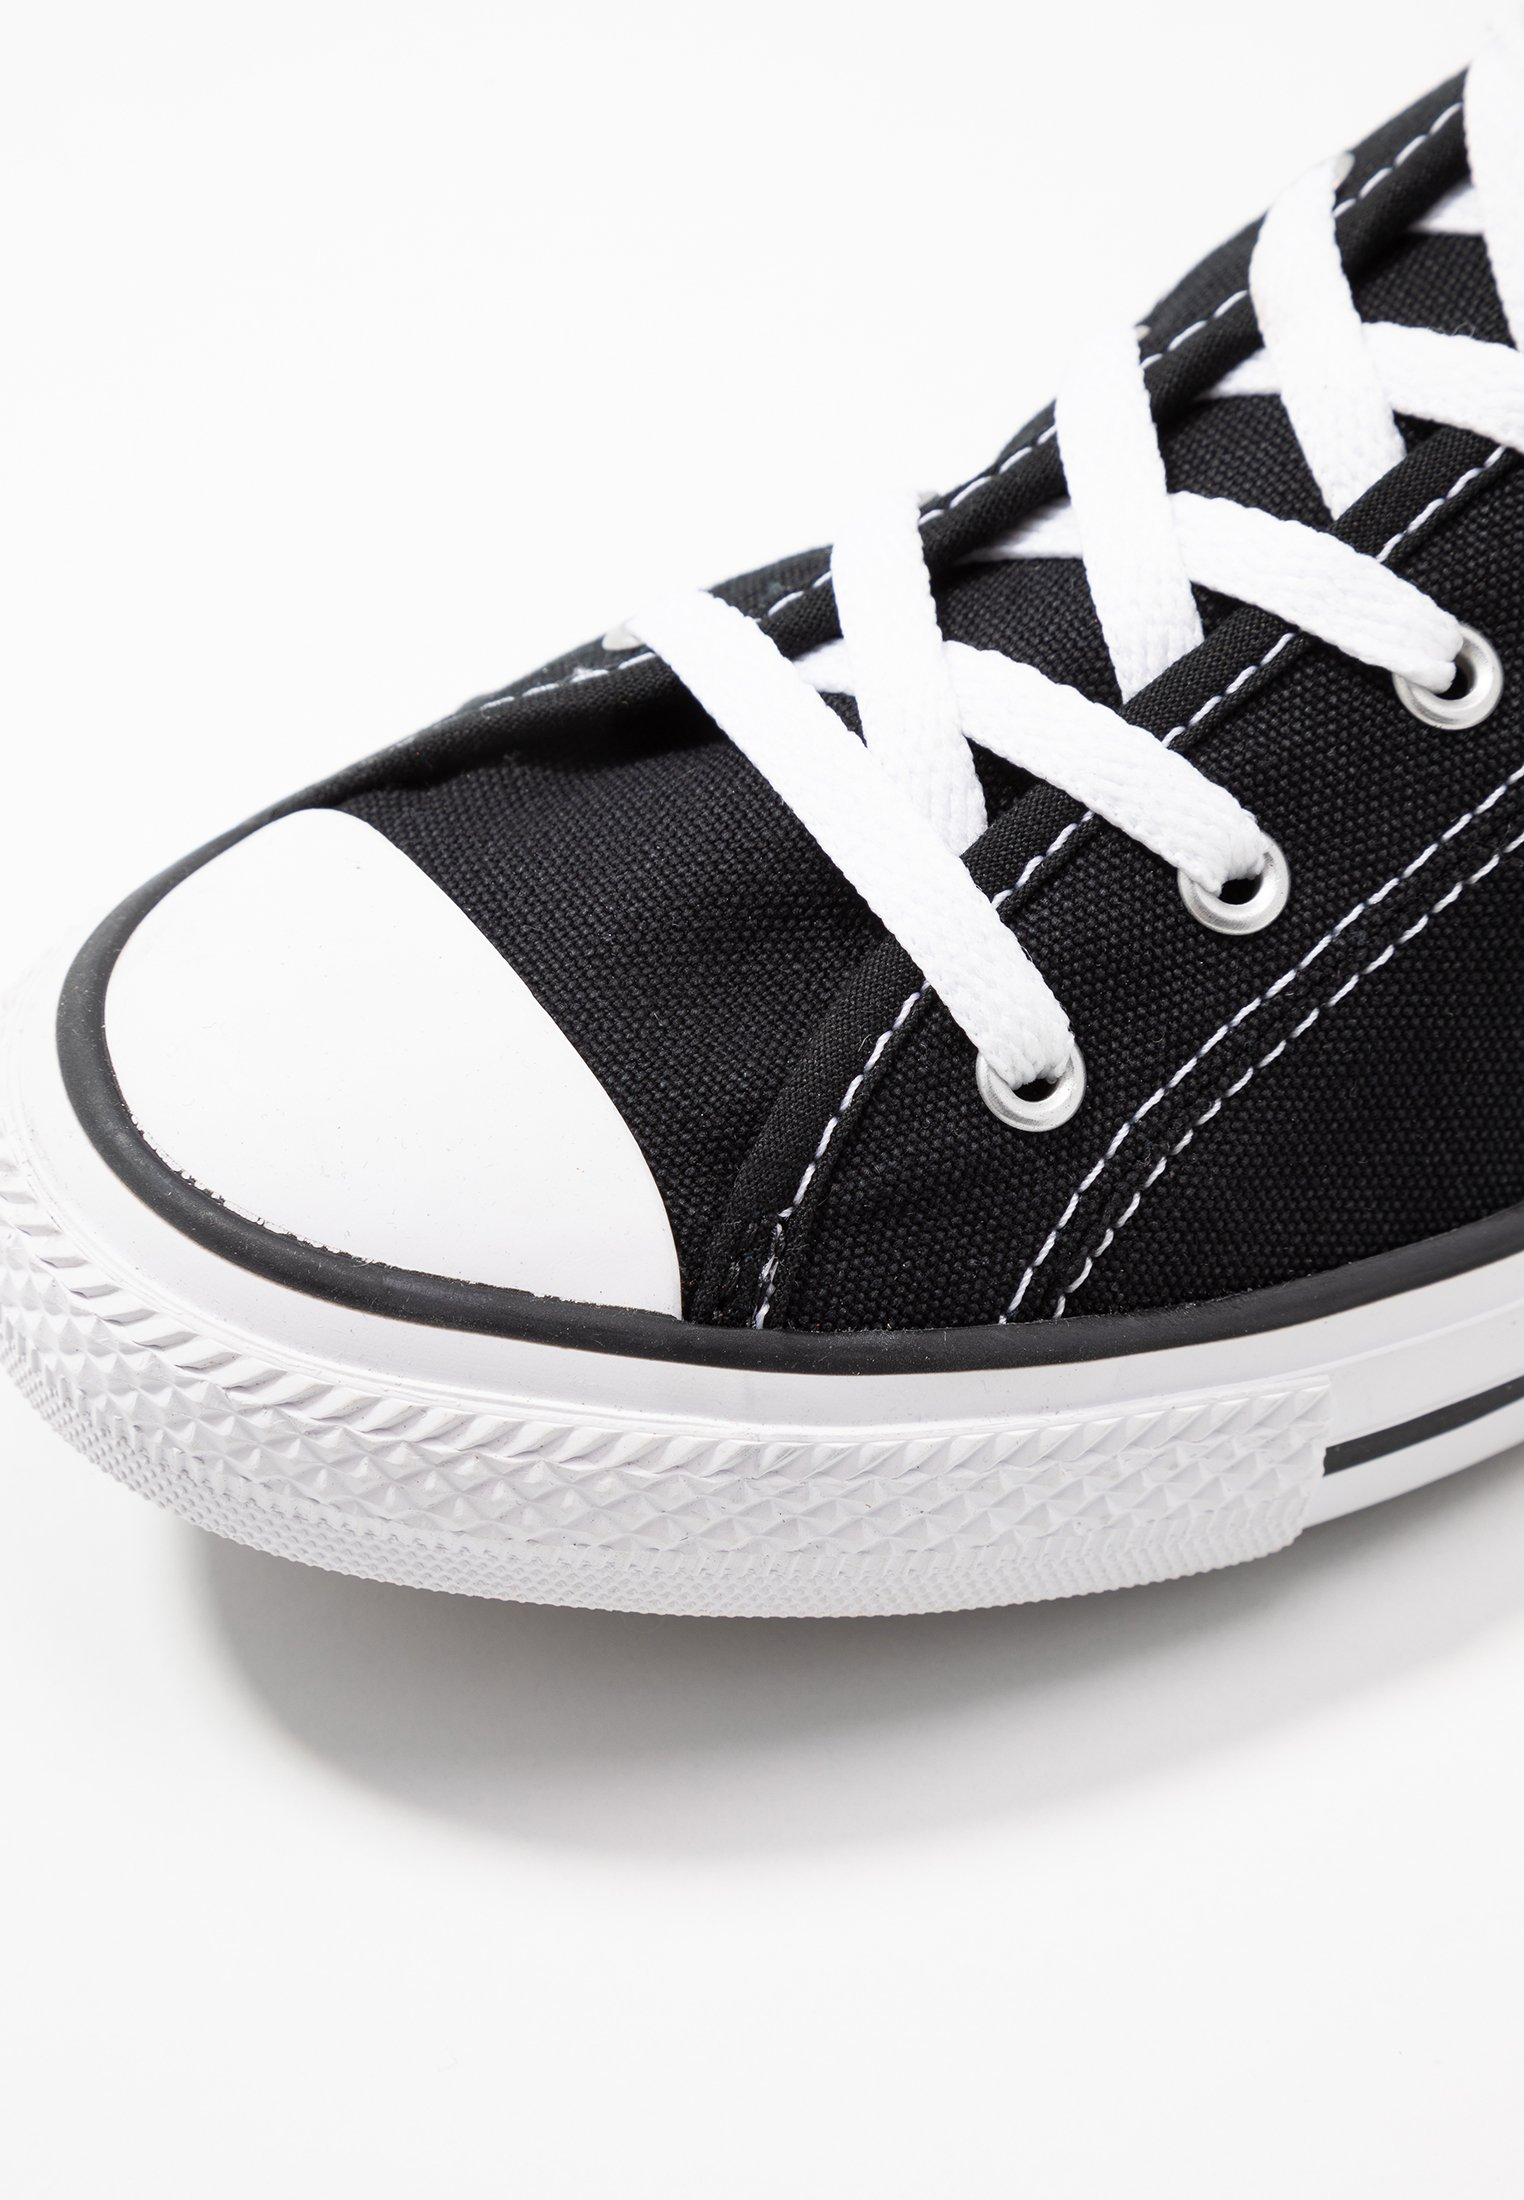 Converse All BasicBaskets Basses Dainty white Chuck Star Taylor Black zUpjqMLSVG